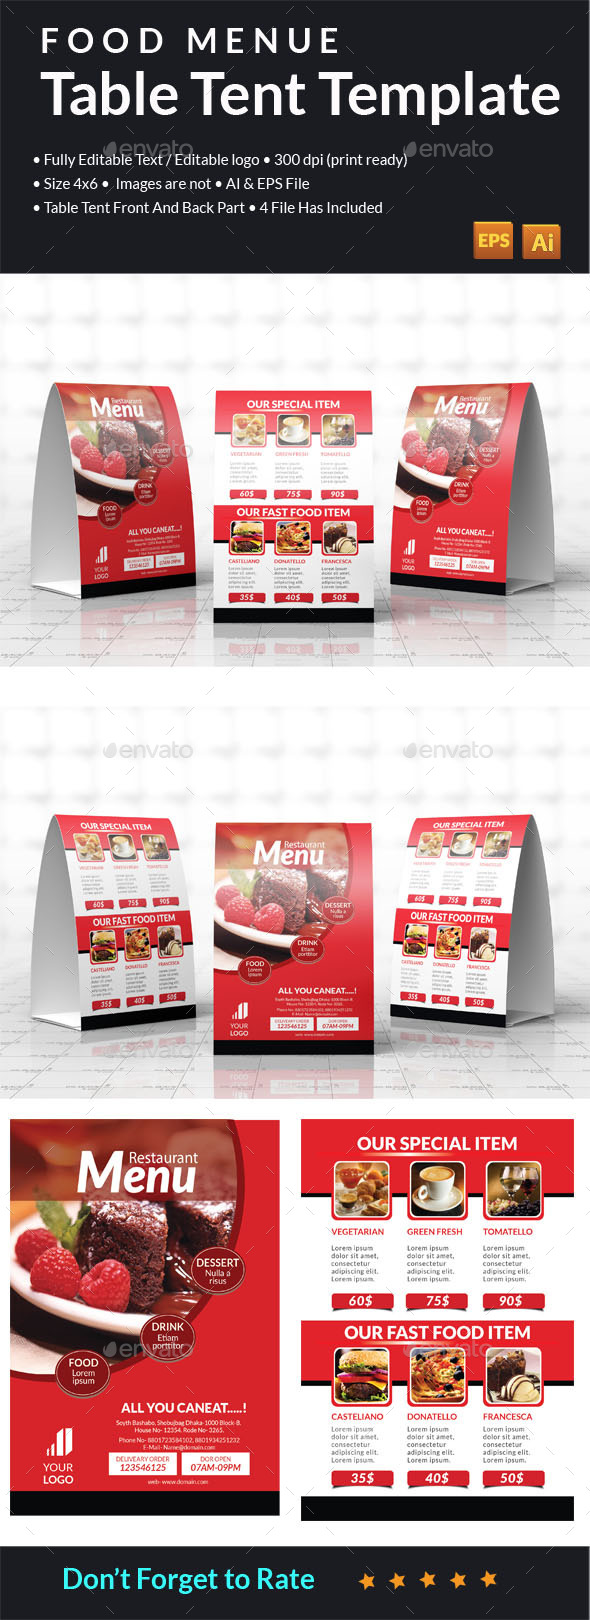 Food Menu Table Tent  - Food Menus Print Templates